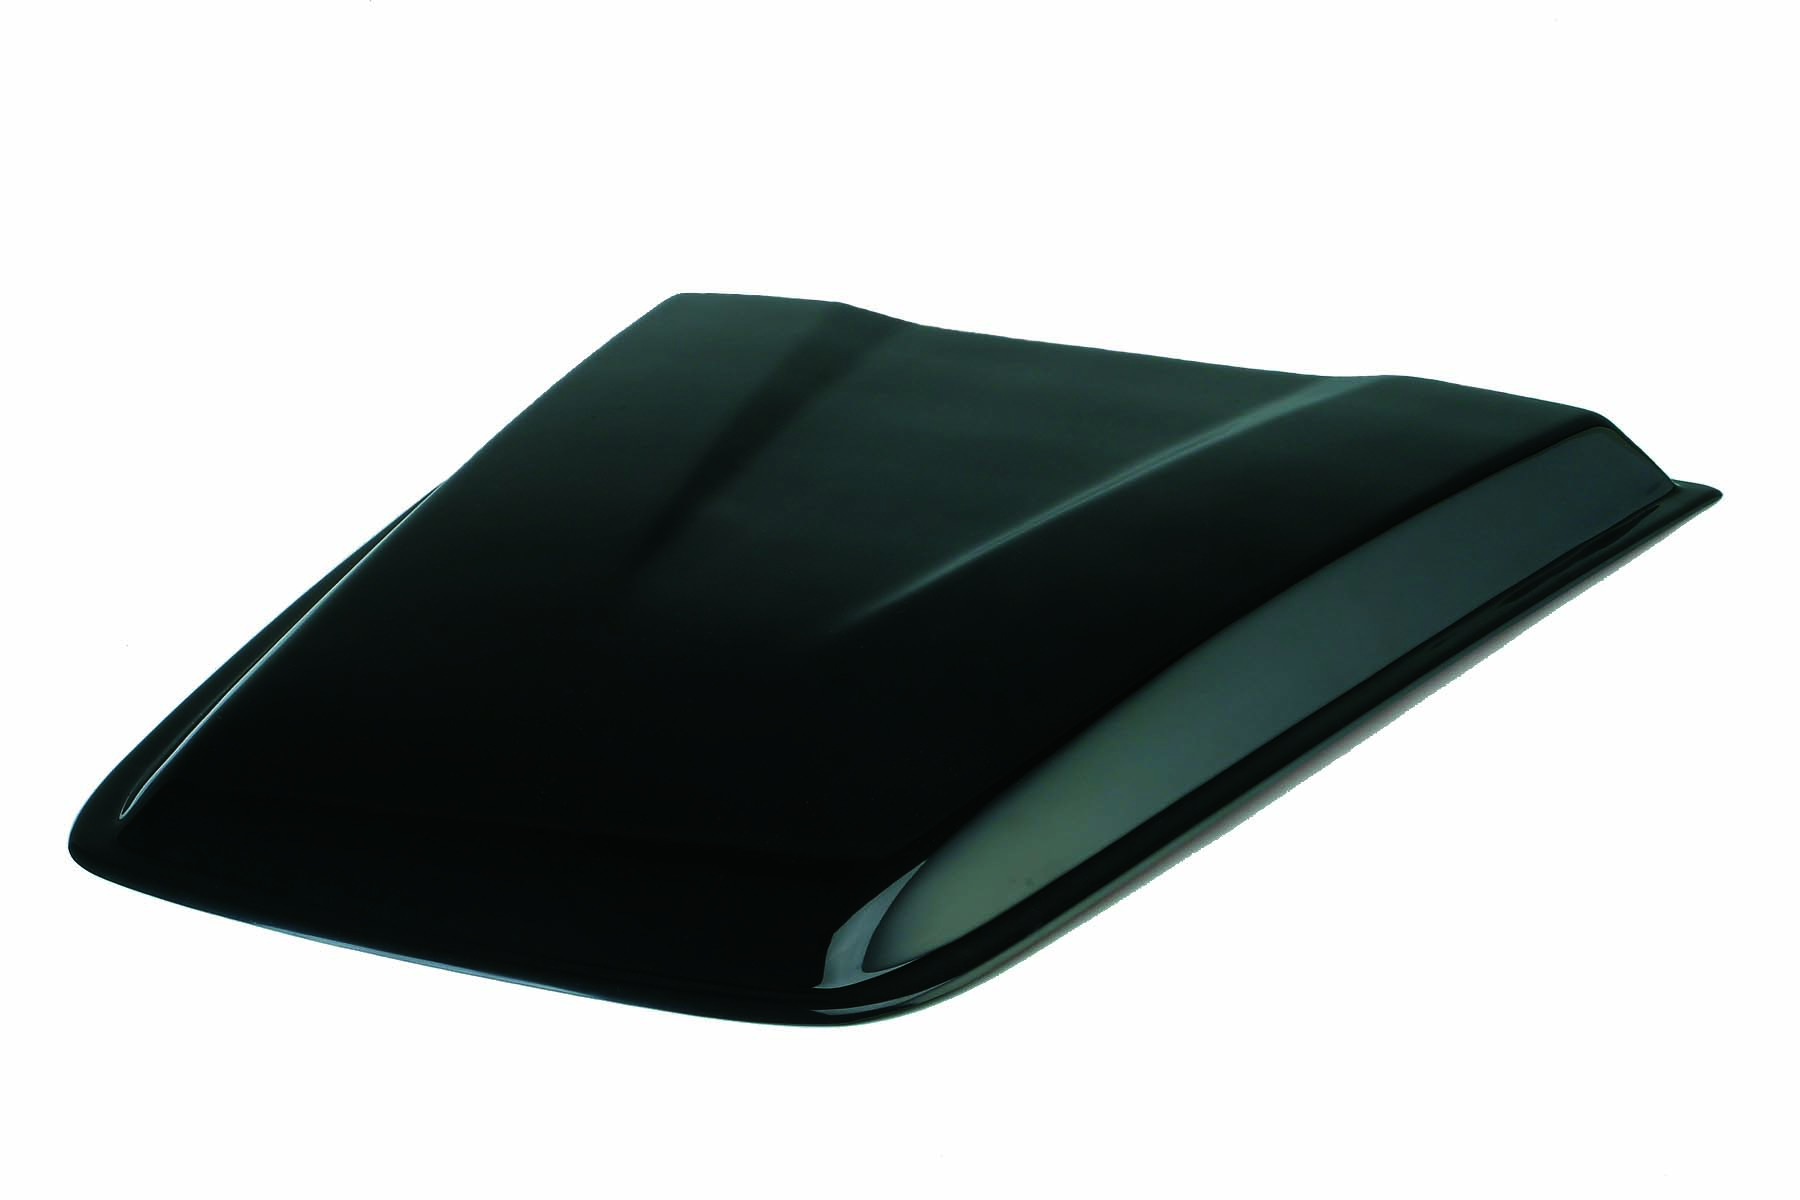 Ford F150 2001-2009 Super Crew Truck Cowl Induction Hood Scoop